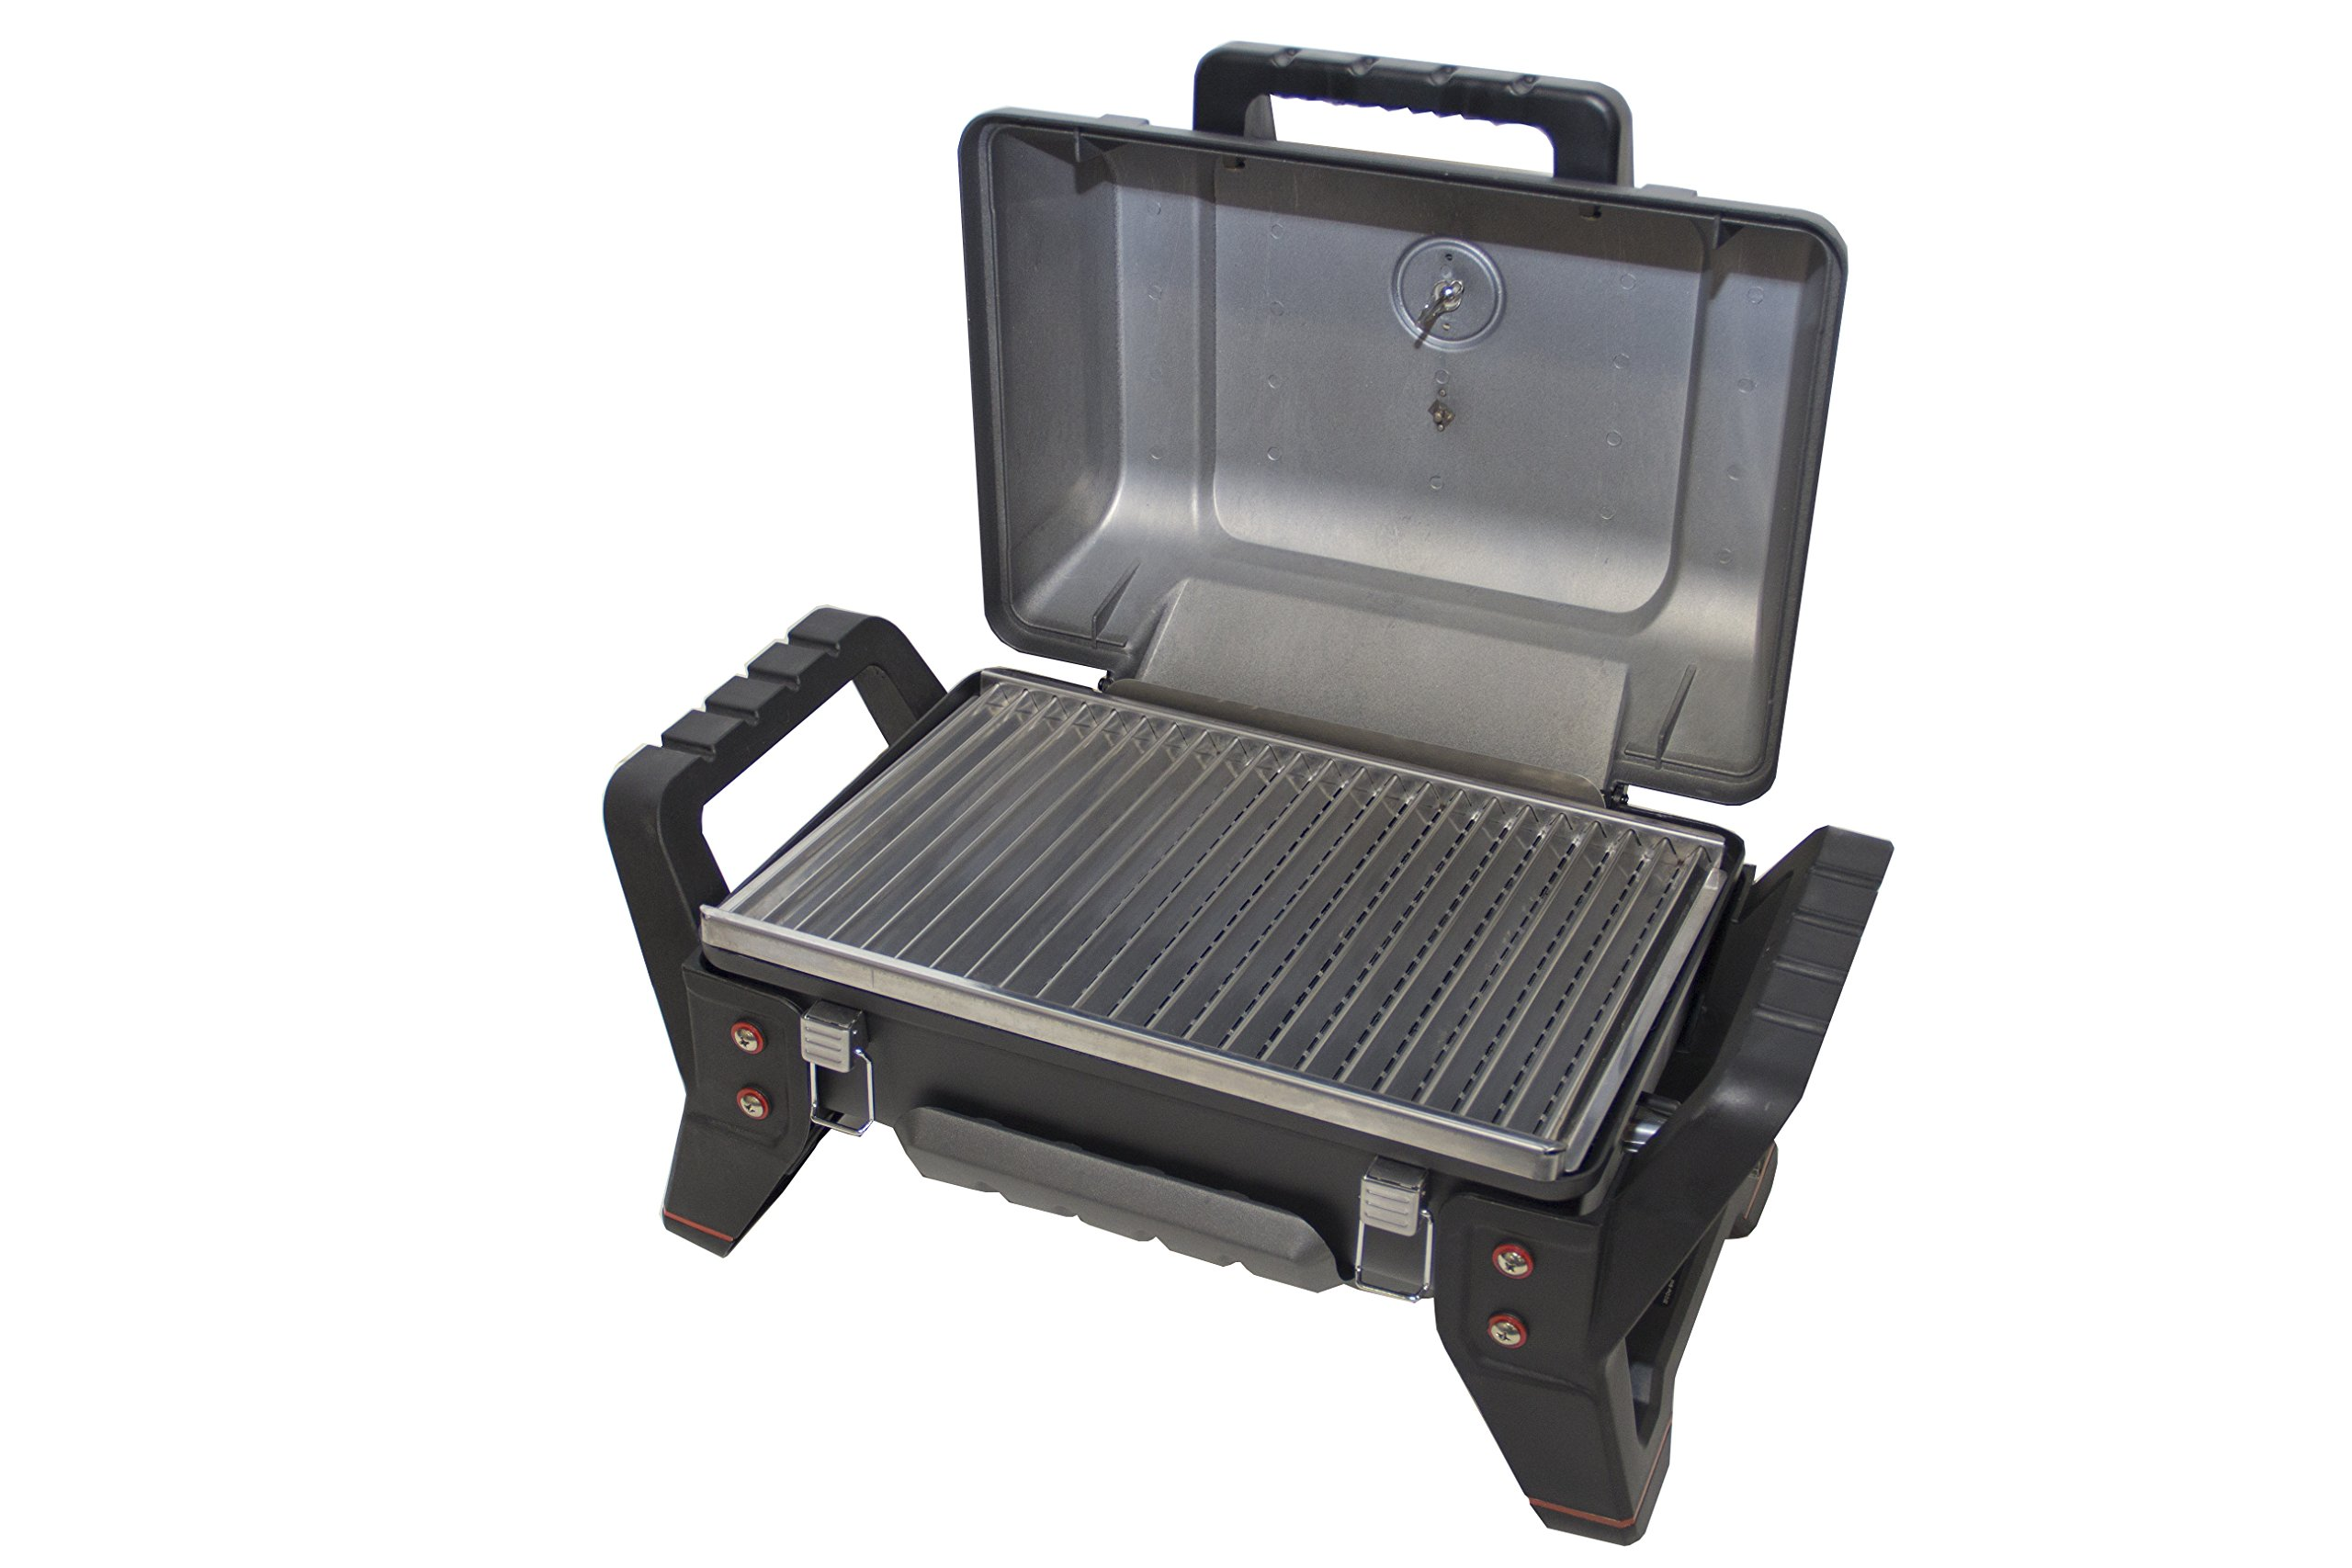 Char-Broil Grill2Go X200 Portable TRU-Infrared Liquid Propane Gas Grill by Char-Broil